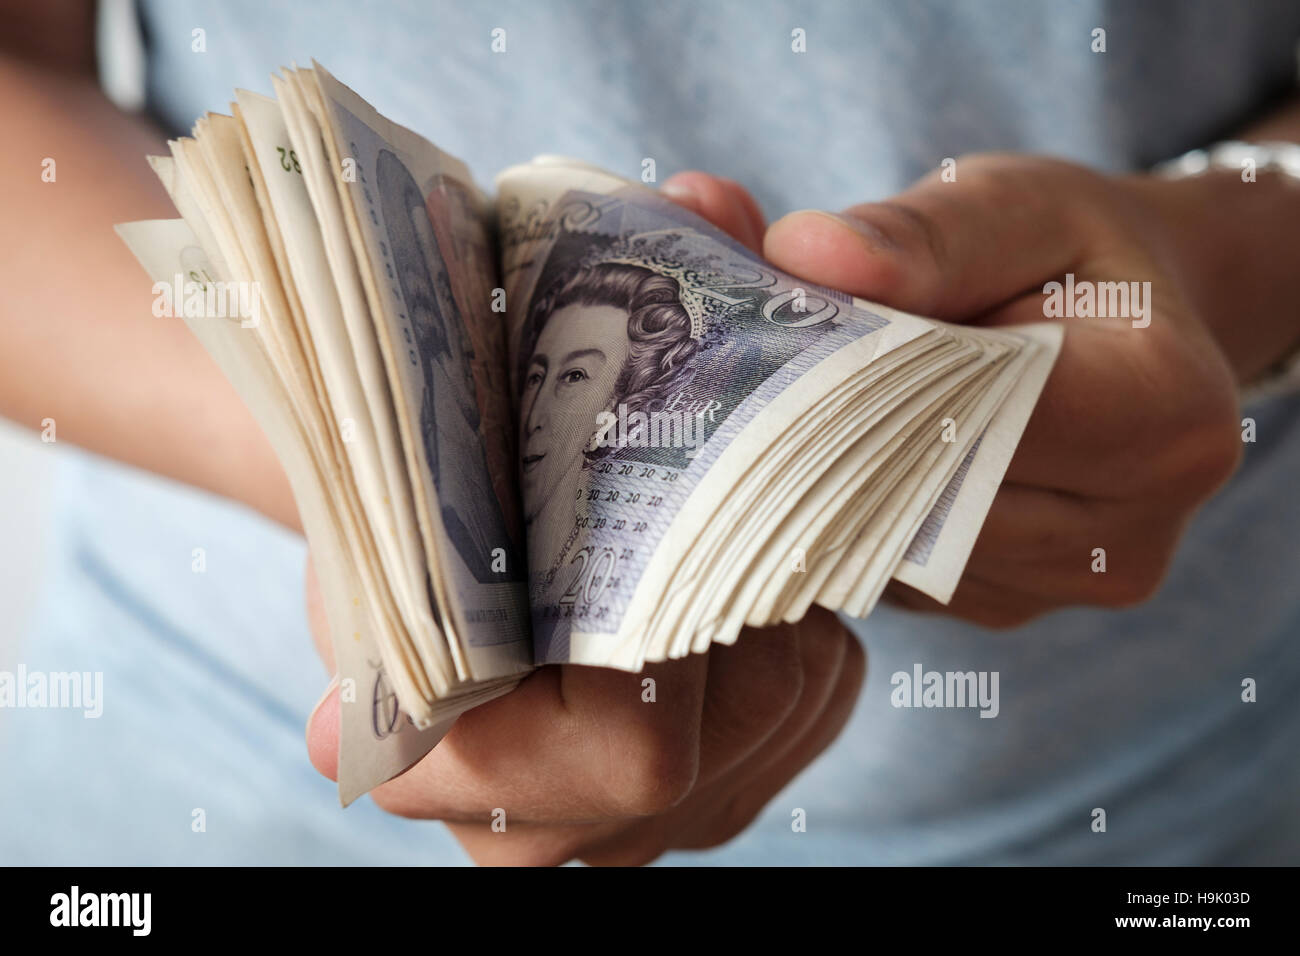 Woman counts British Pound Sterling - Stock Image